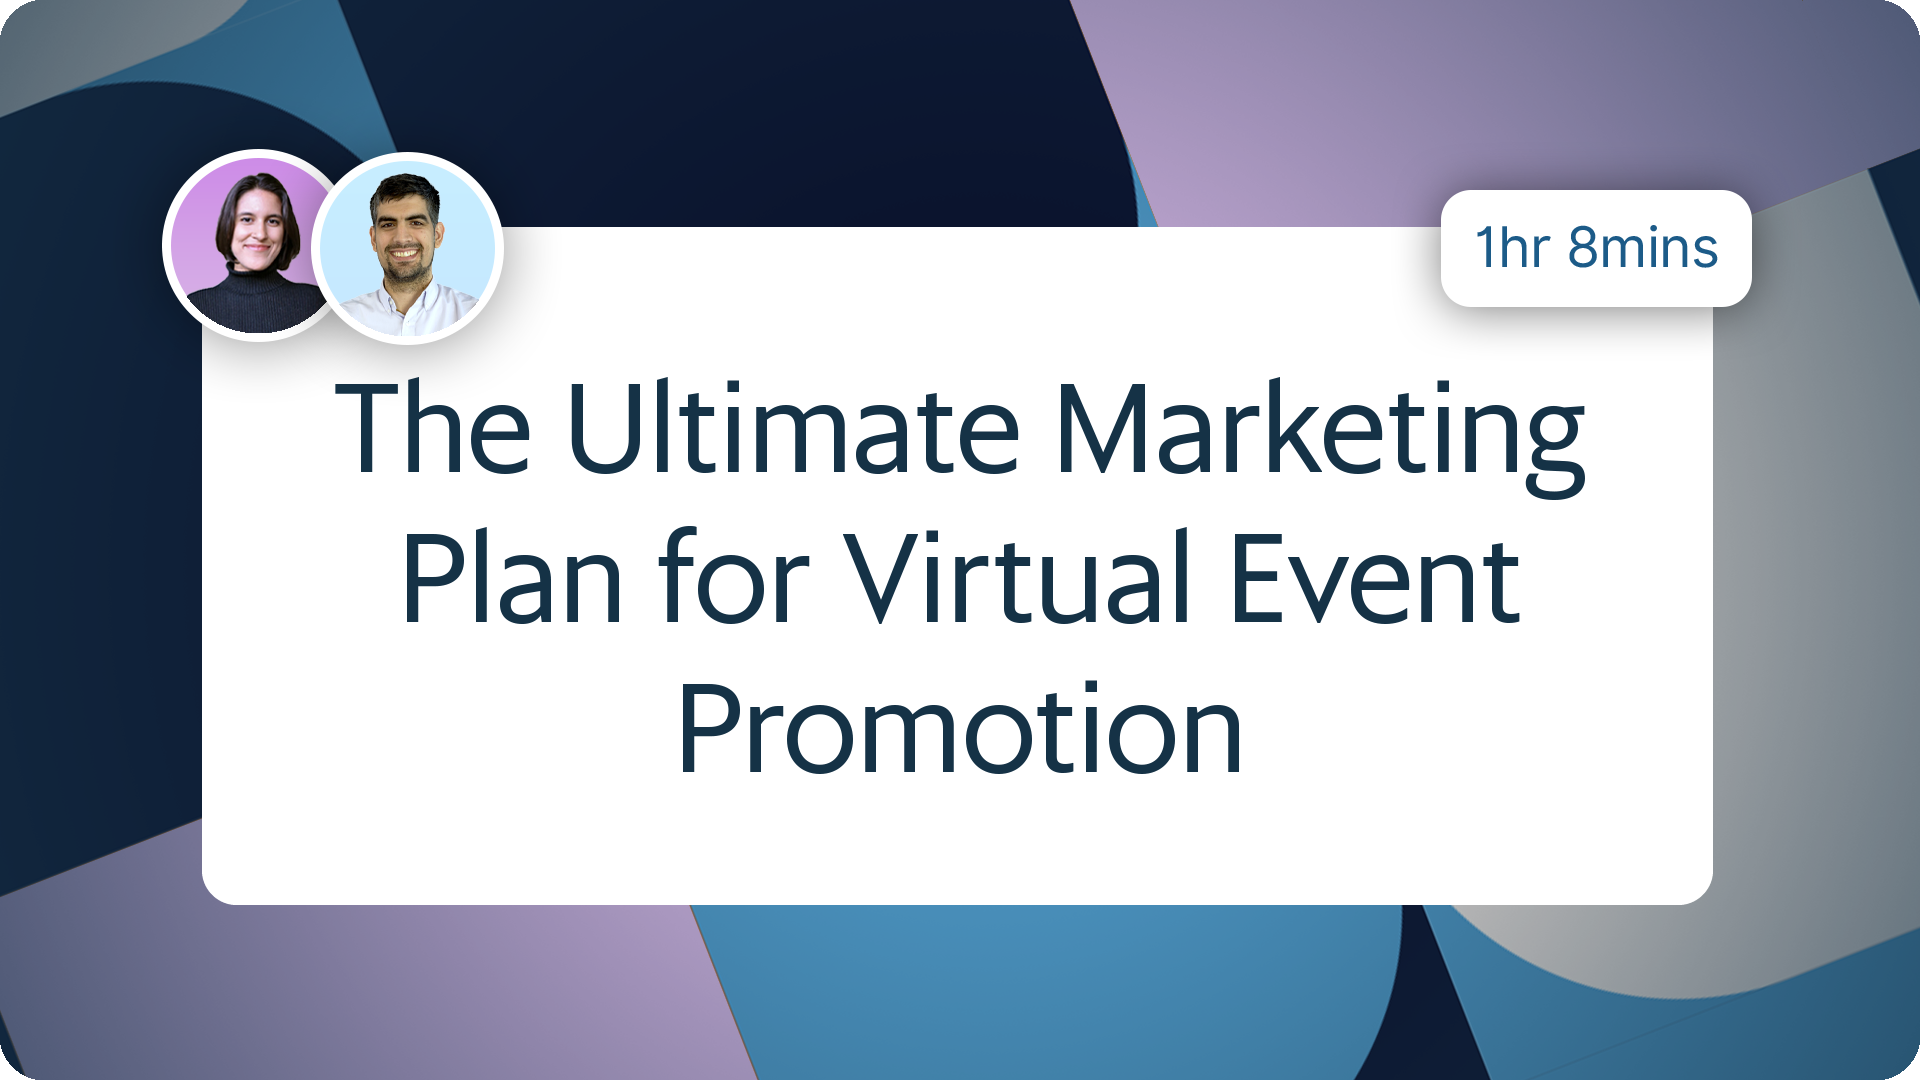 The Ultimate Marketing Plan for Virtual Event Promotion